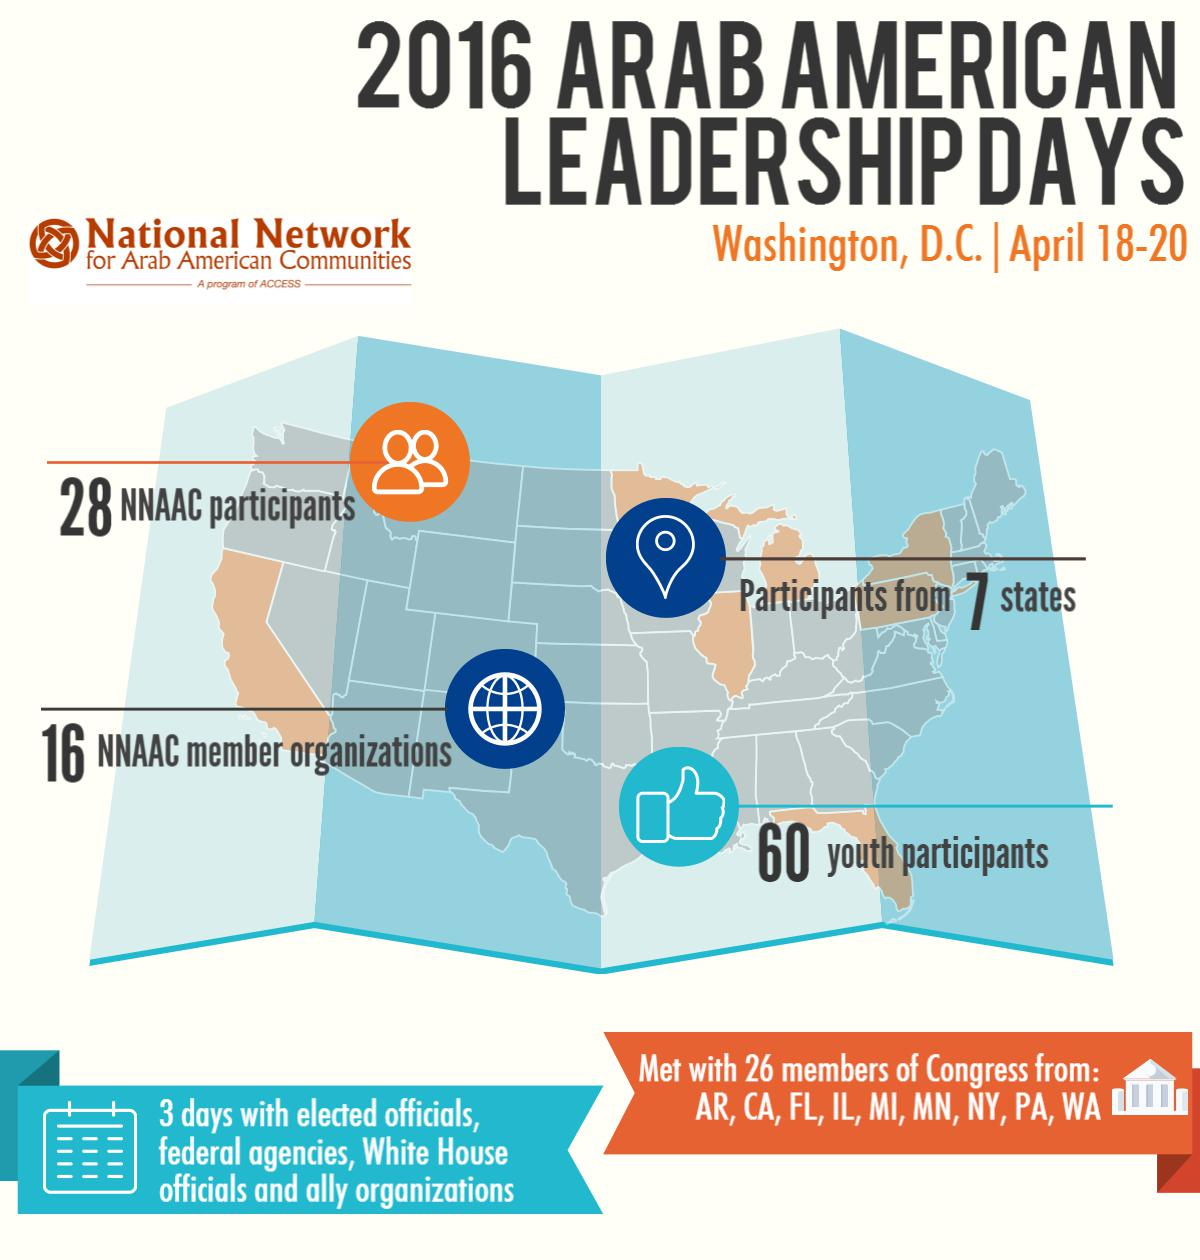 arab-american-leadership-days-2016-recap_block_1_3.jpeg